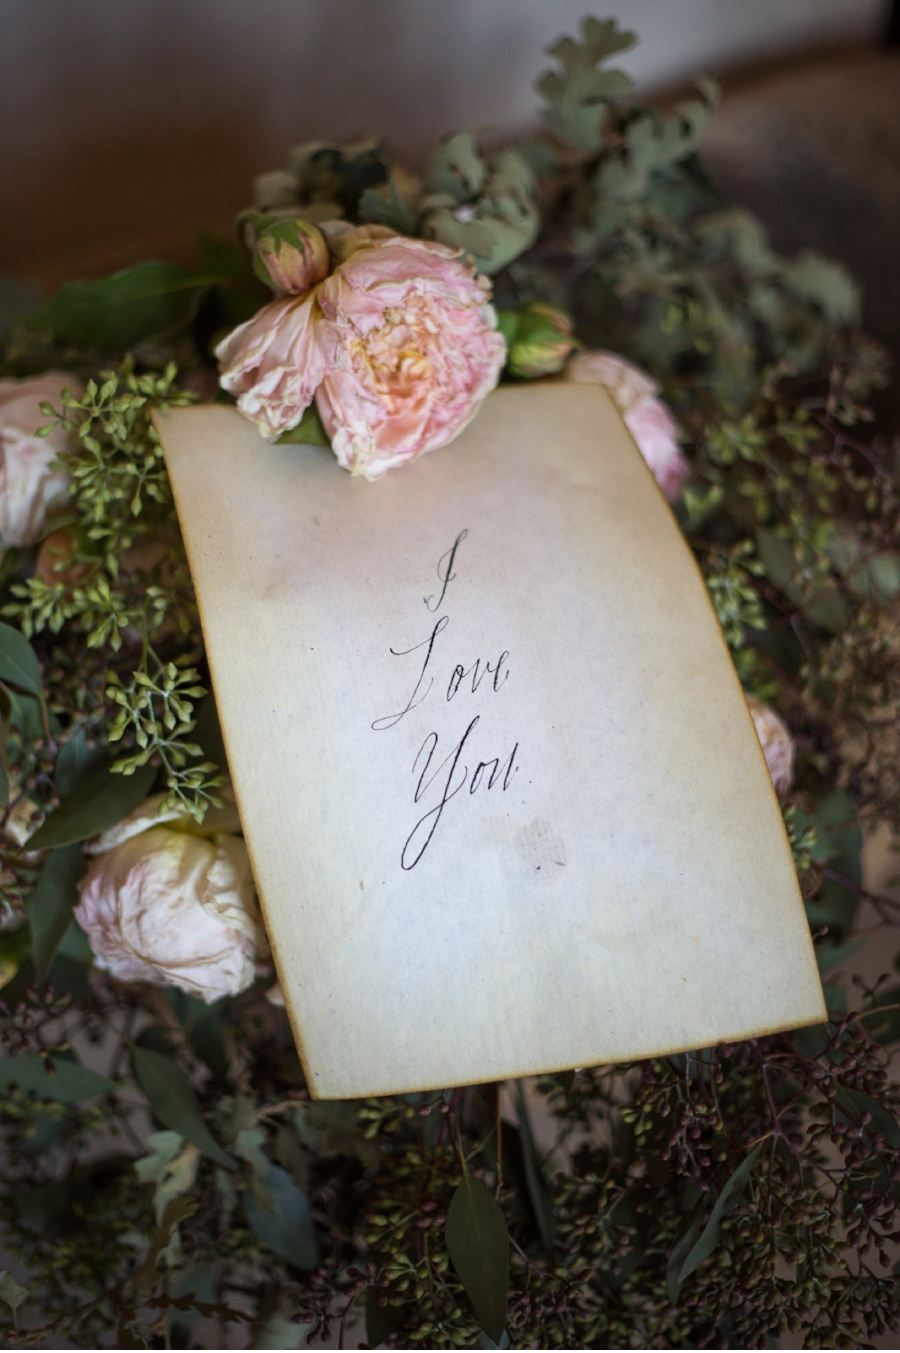 19. Three simple words on parchment style paper say it all.From Elizabeth Messina's  A Lovely Workshop  with calligraphy by  Maybelle Imasa-Stukuls  and photography by  Maru Photography  .